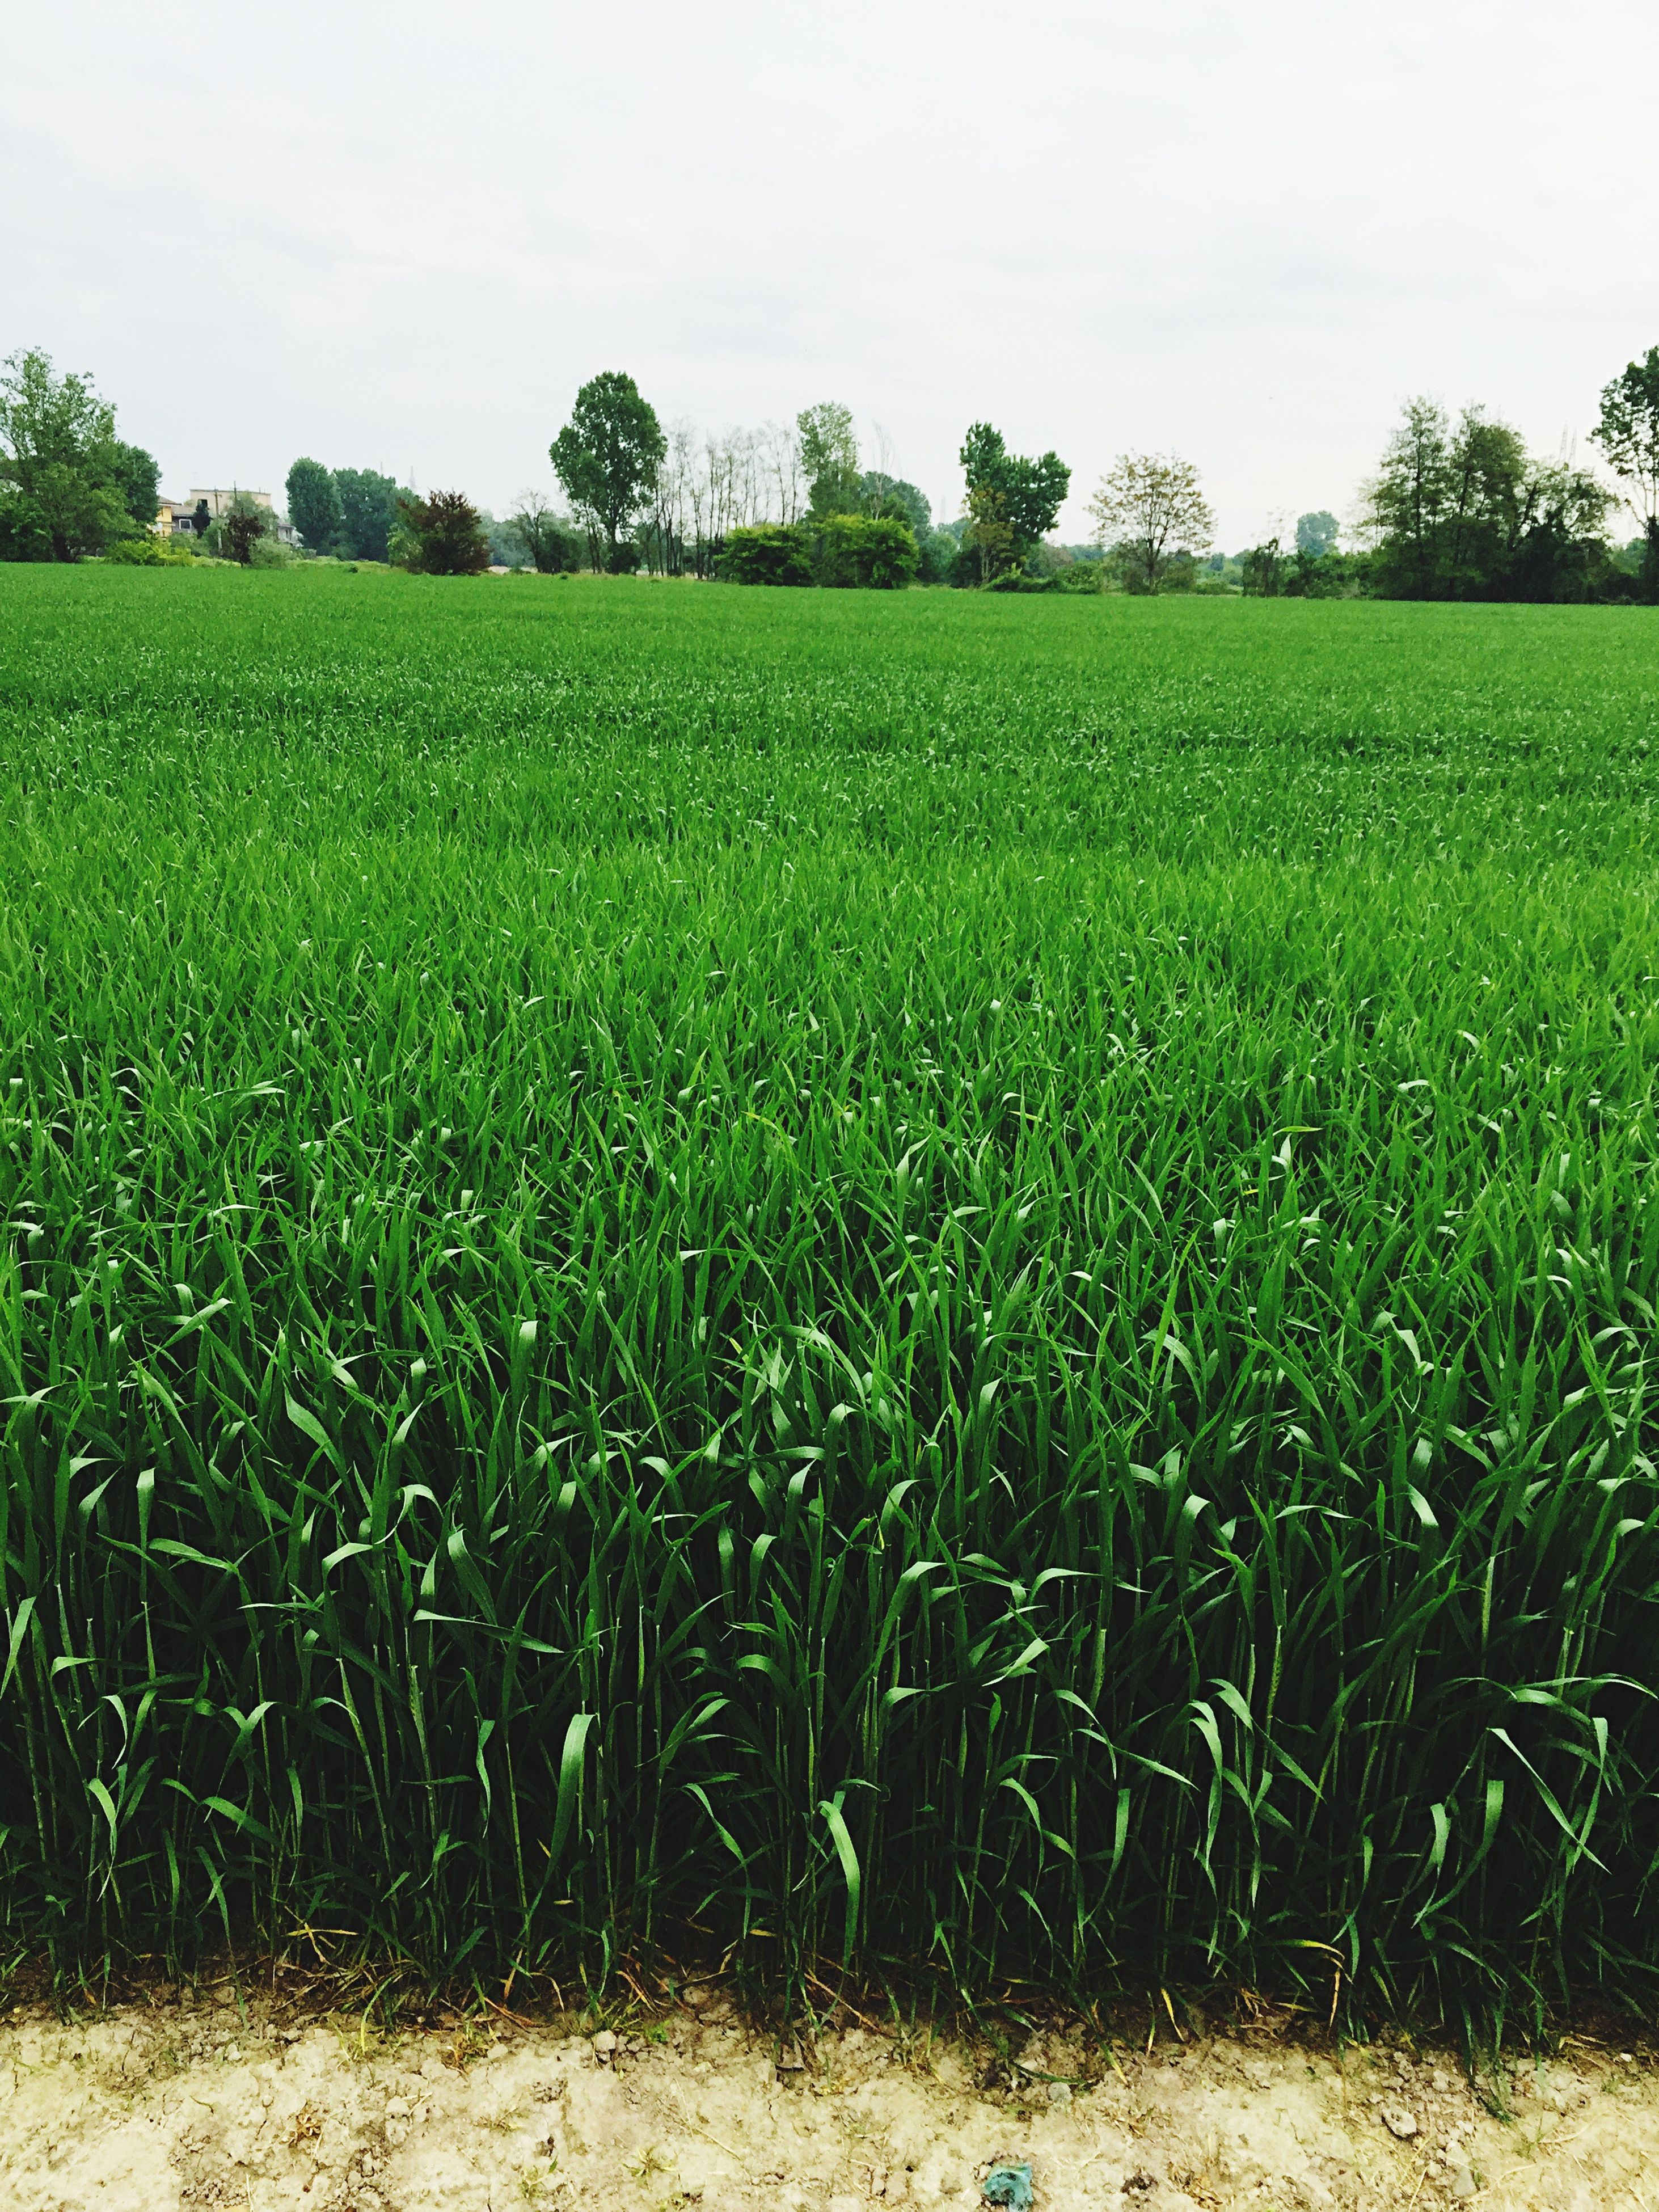 field, grass, growth, green color, landscape, tranquility, tranquil scene, rural scene, beauty in nature, agriculture, grassy, nature, scenics, farm, crop, clear sky, tree, sky, green, plant